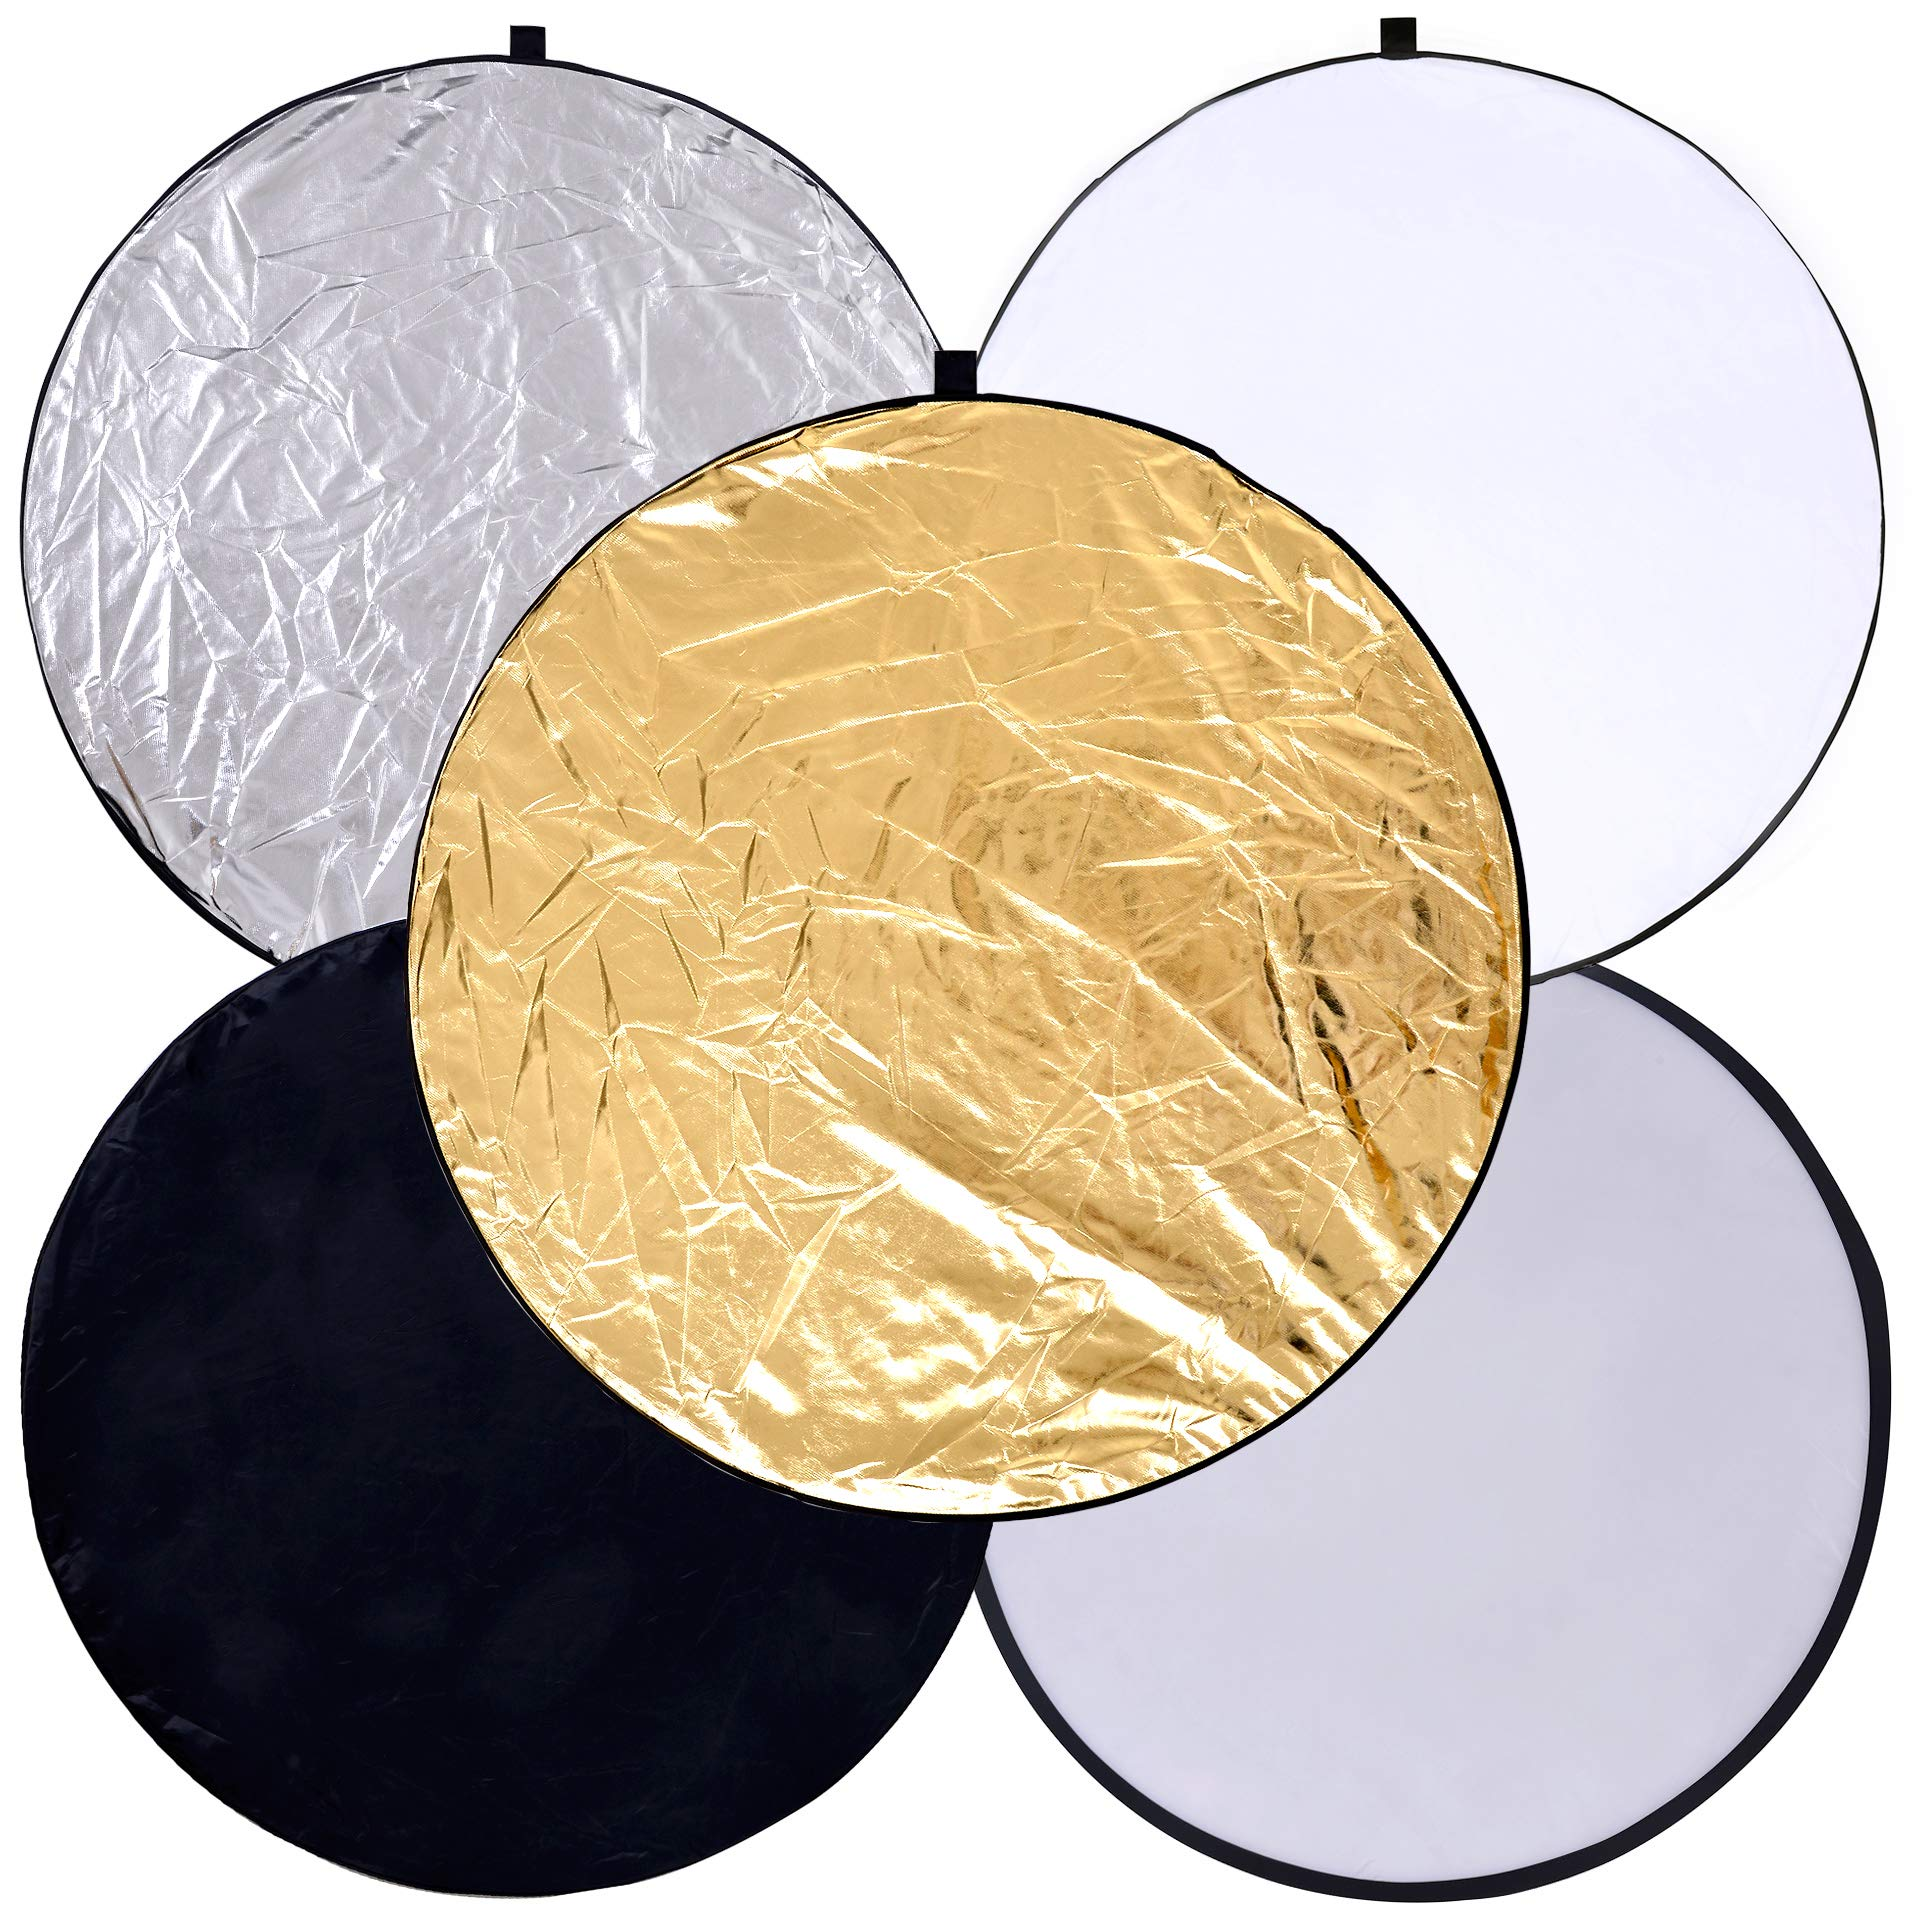 Round 24-inch / 60cm 5-in-1 Portable Collapsible Multi Disc Light Reflector Photography with Bag for Studio or Any Photography Situation-Silver, Gold, White, Translucent and Black by GINNOR